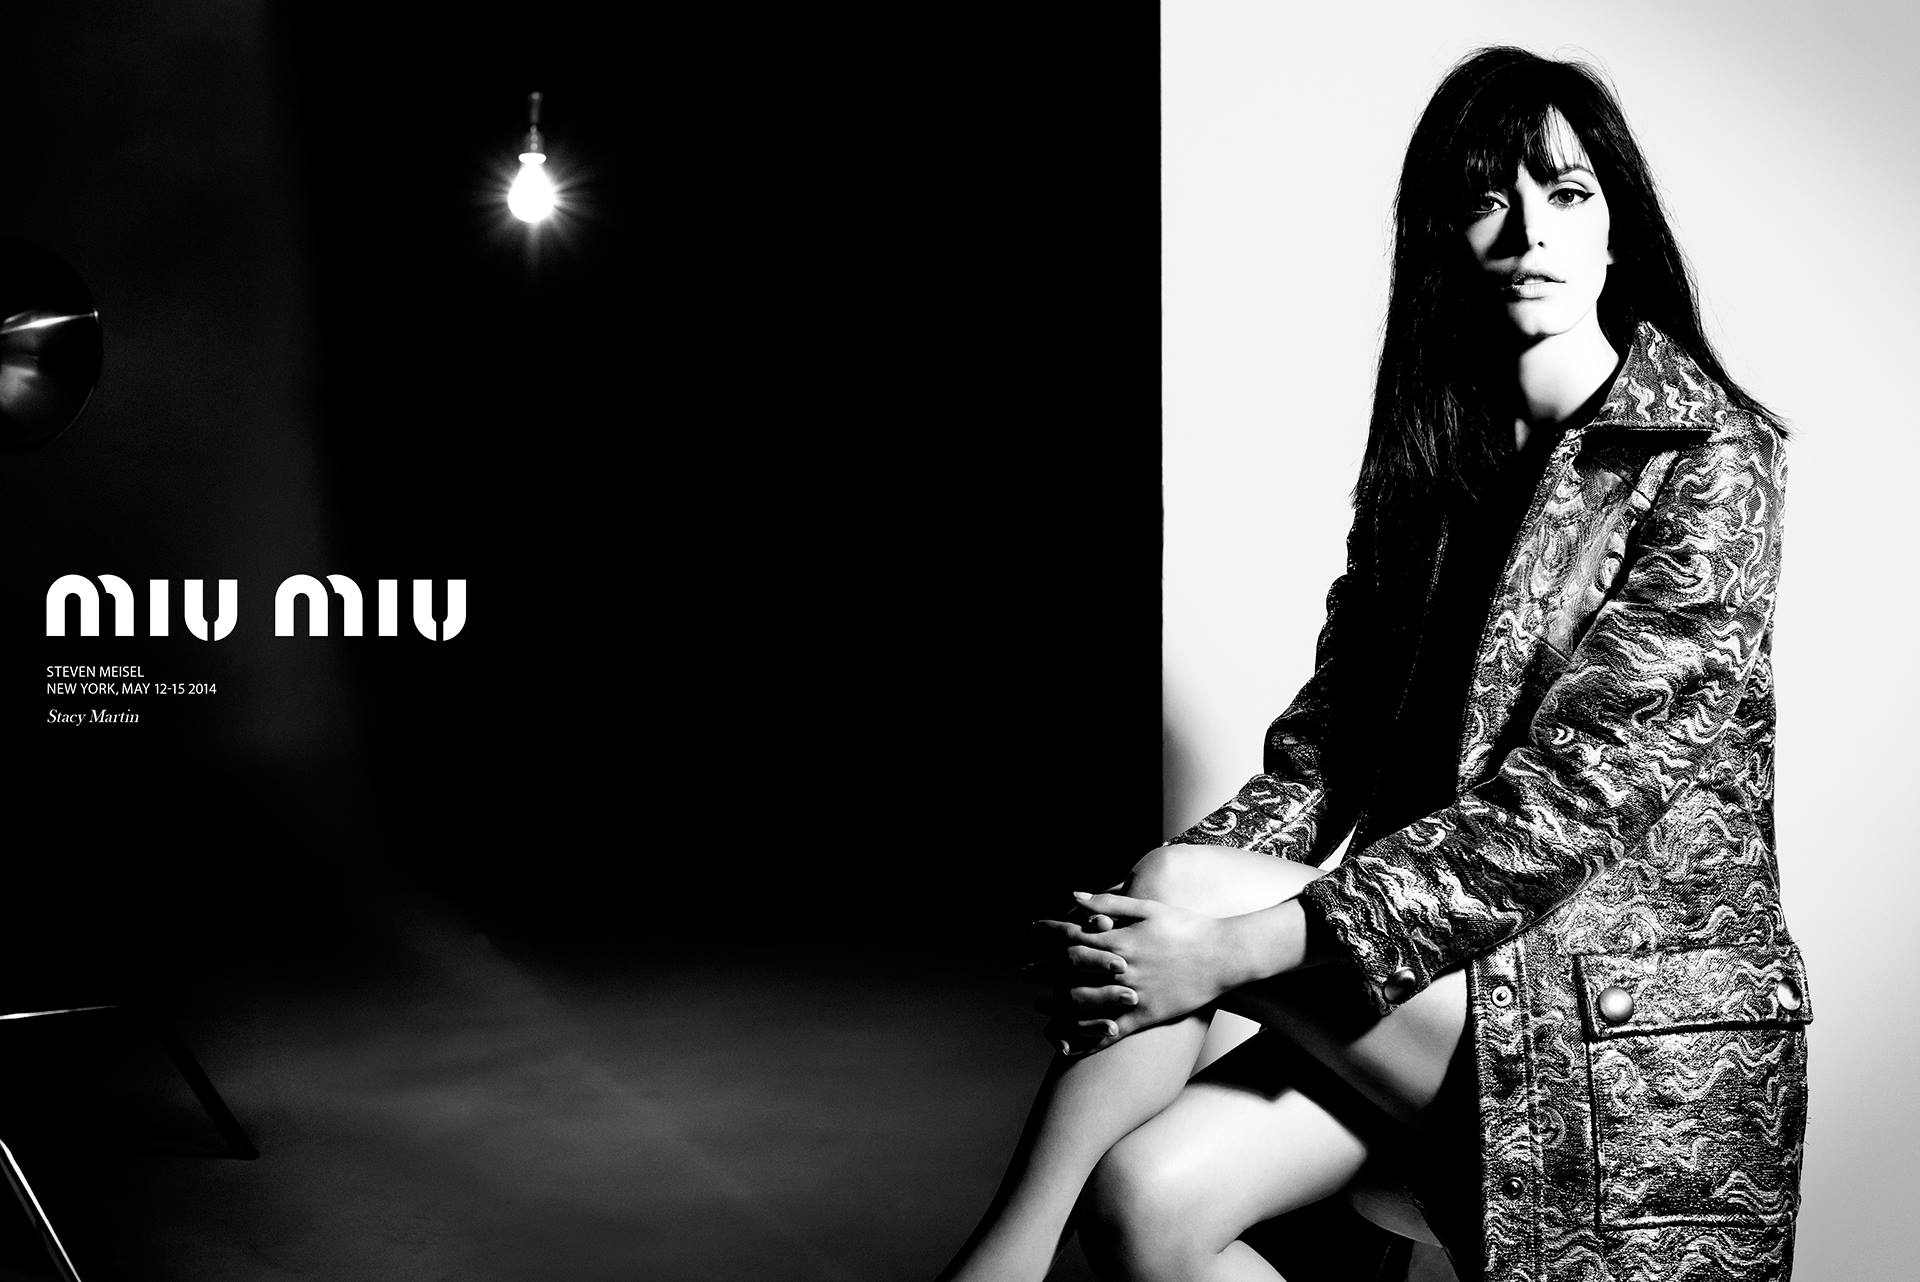 stacy-martin-by-steven-meisel-for-miu-miu-fall-winter-2014-20151